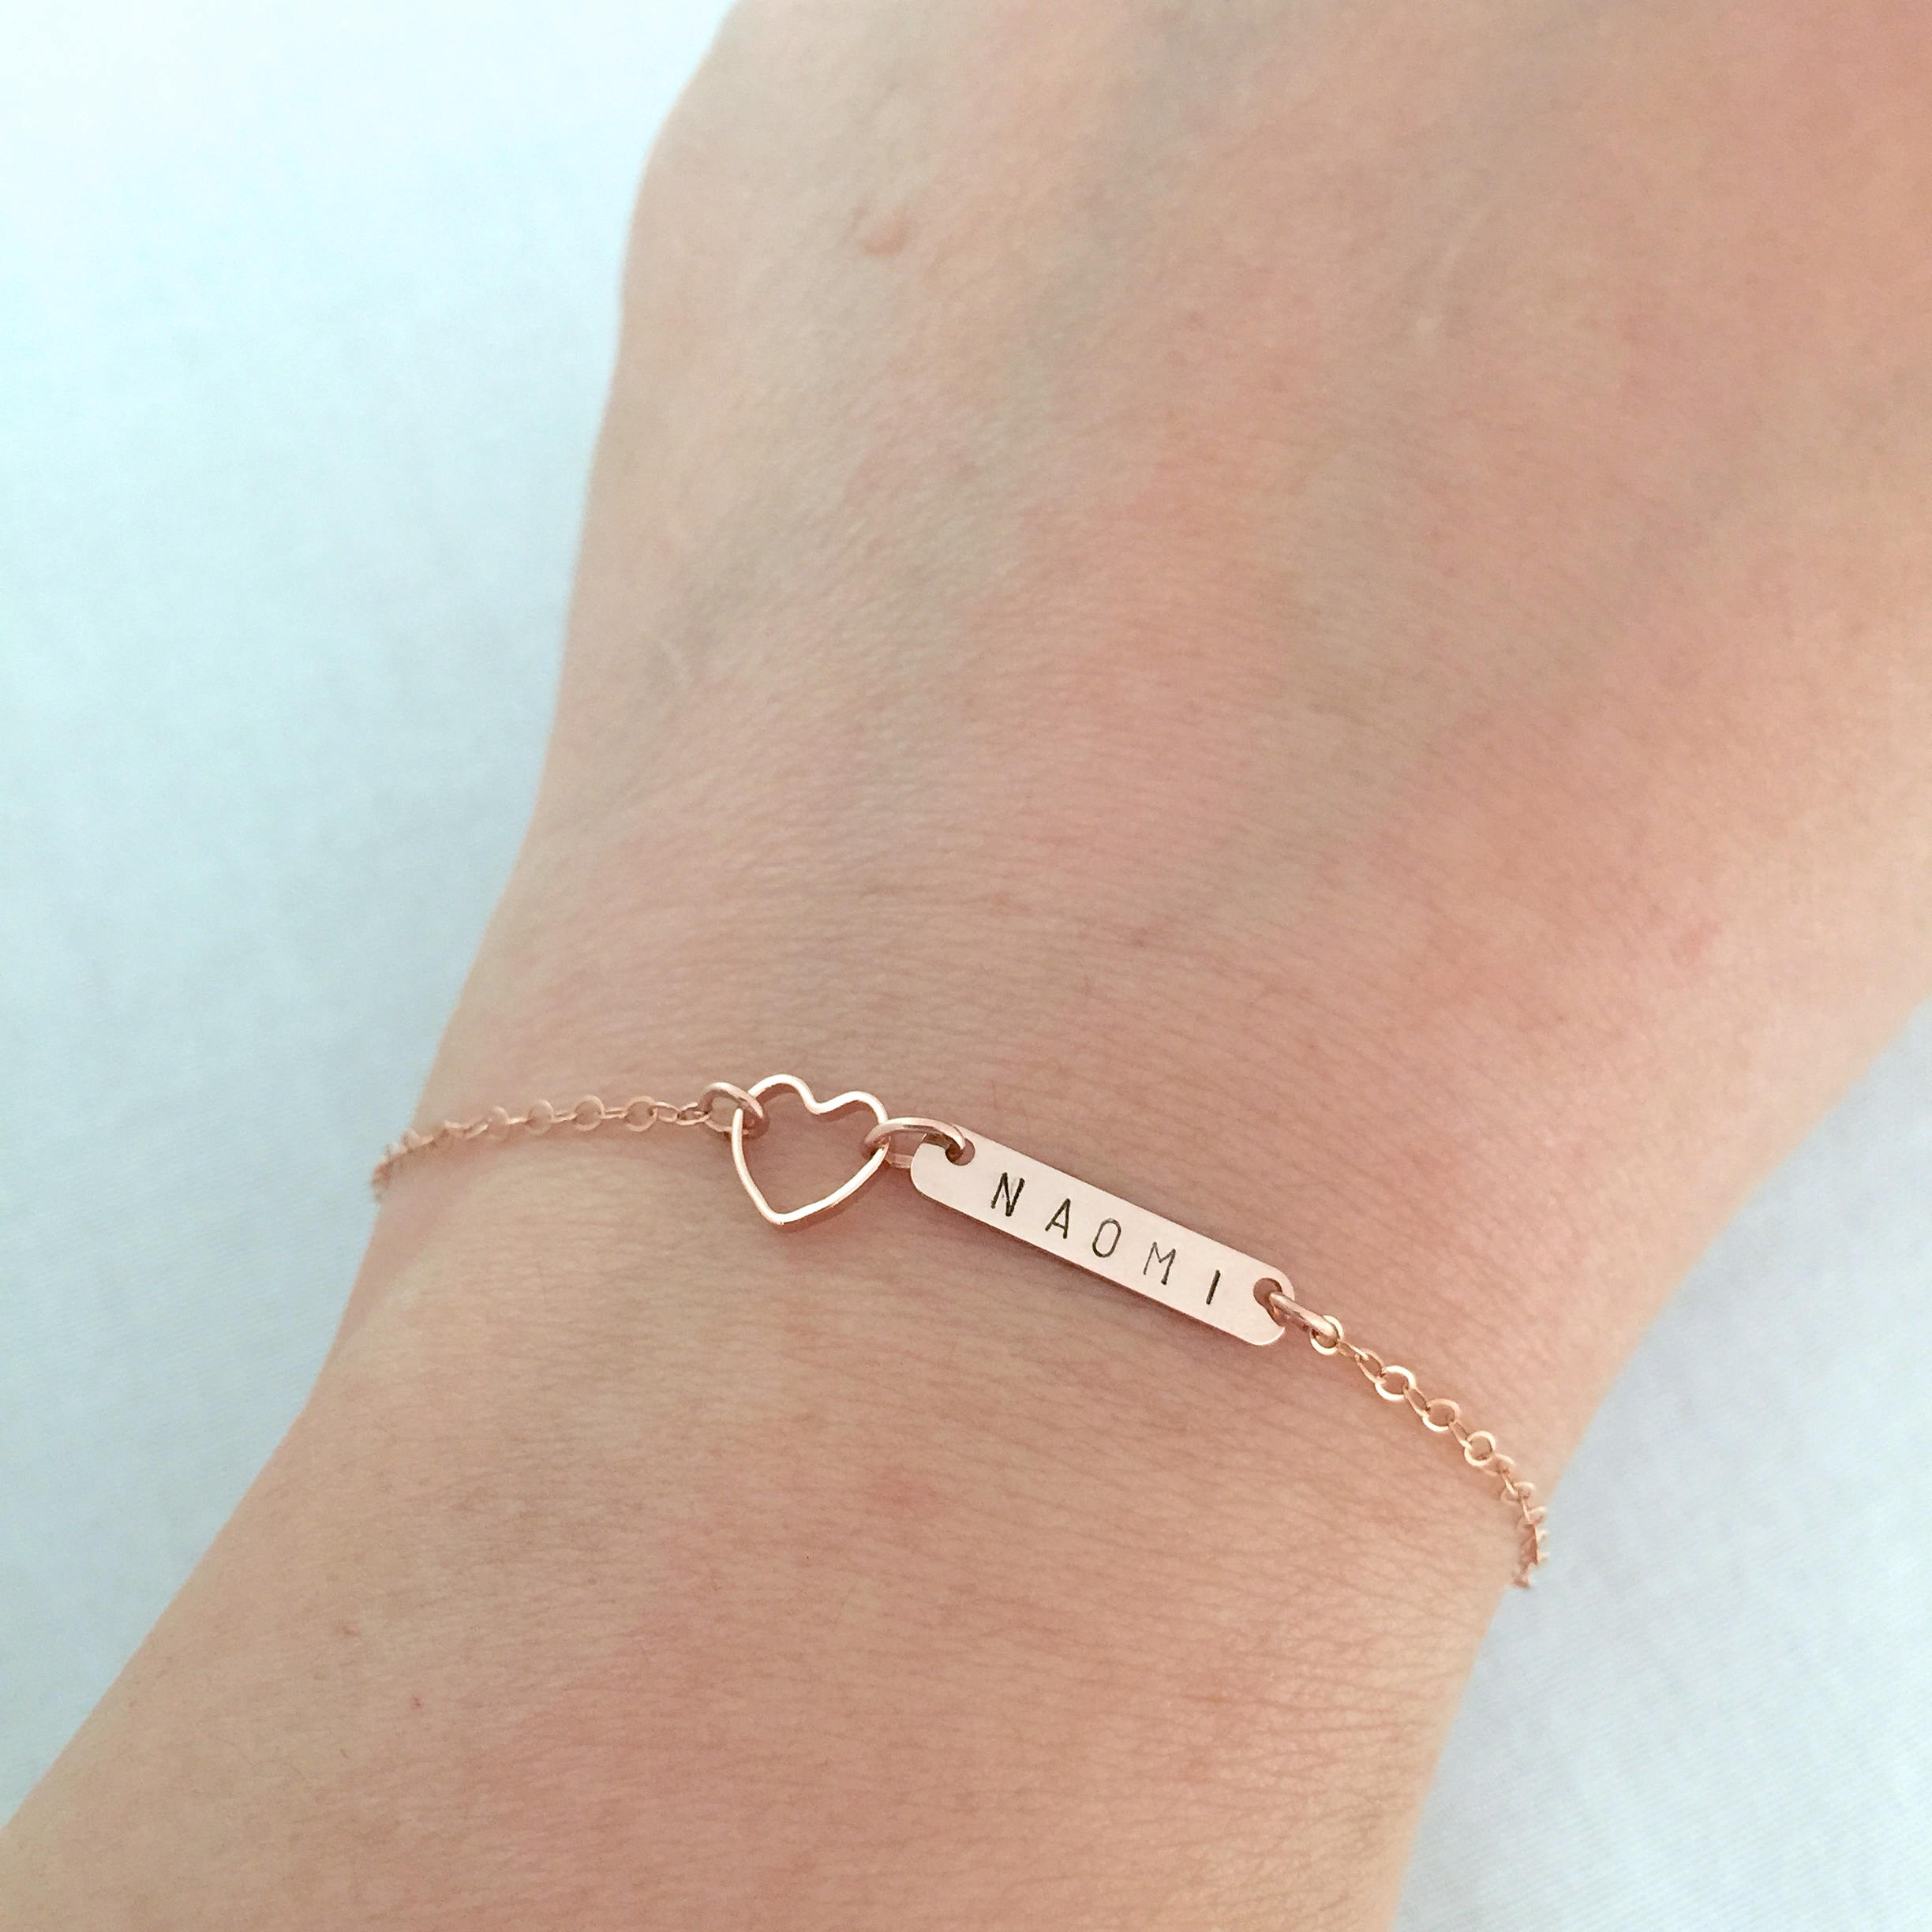 Little Girl Name Bracelet, Rose Gold Heart, Dainty Bar Bridesmaid Christening Gift, Maid Of Honor Wedding Jewelry